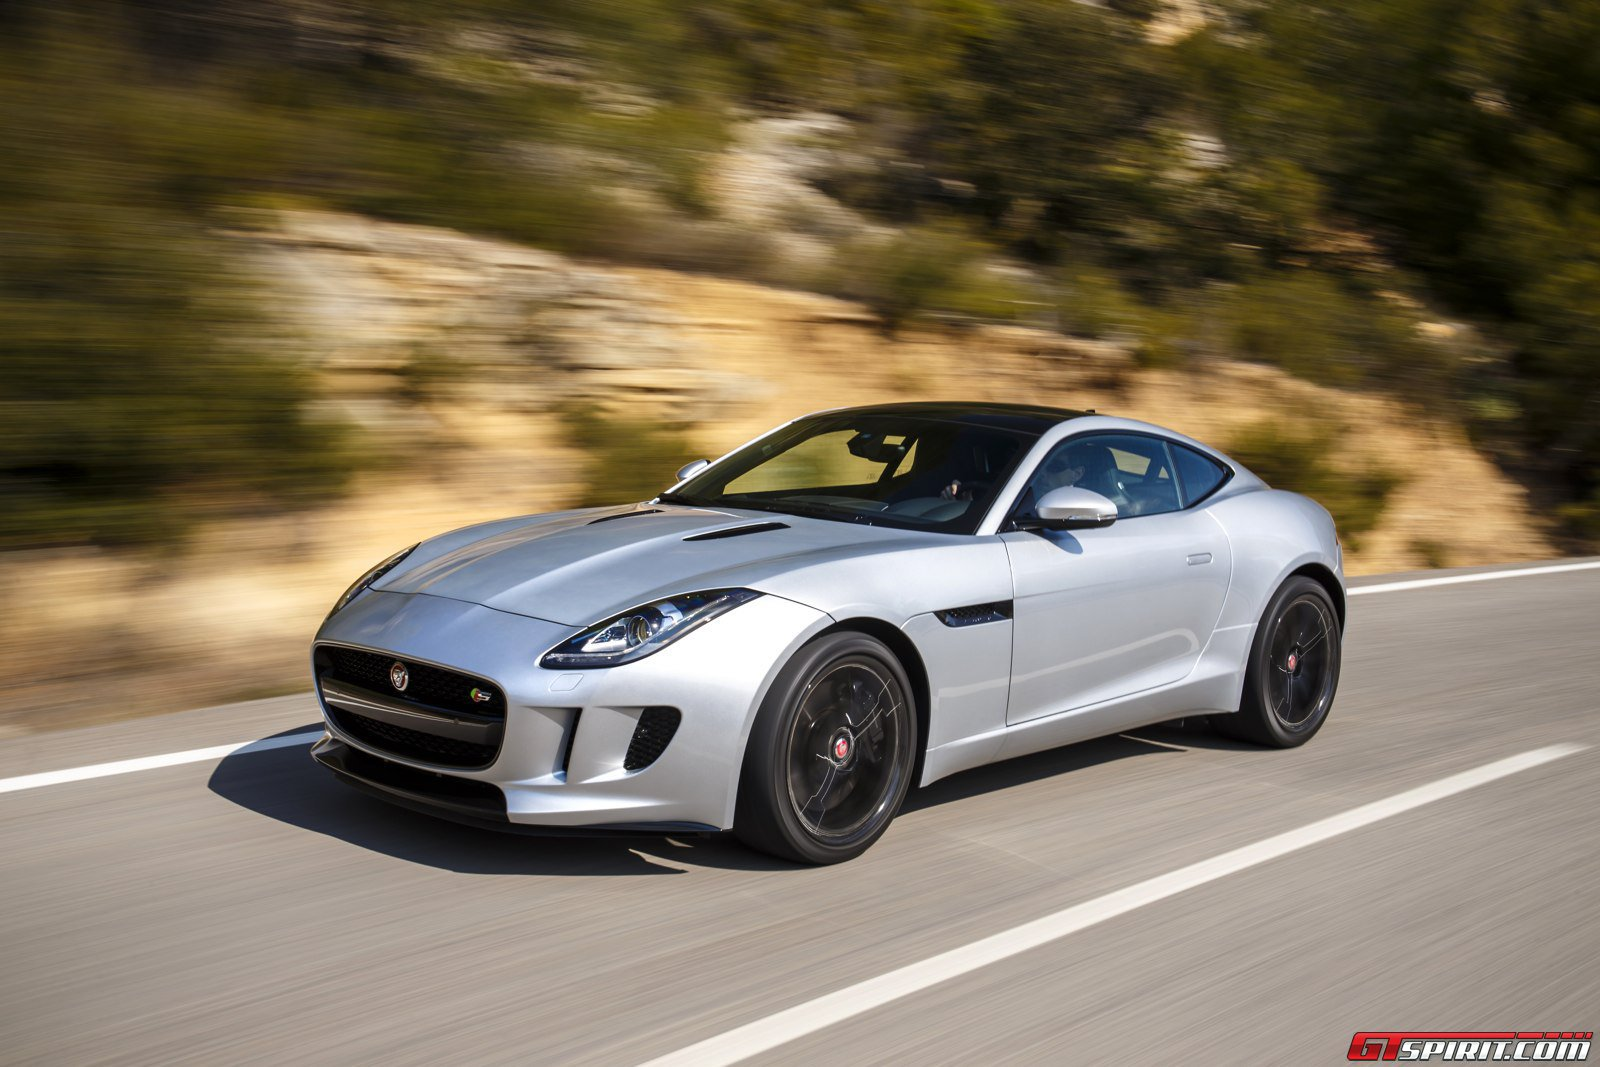 2010 Jaguar F Type Coupe photo - 1